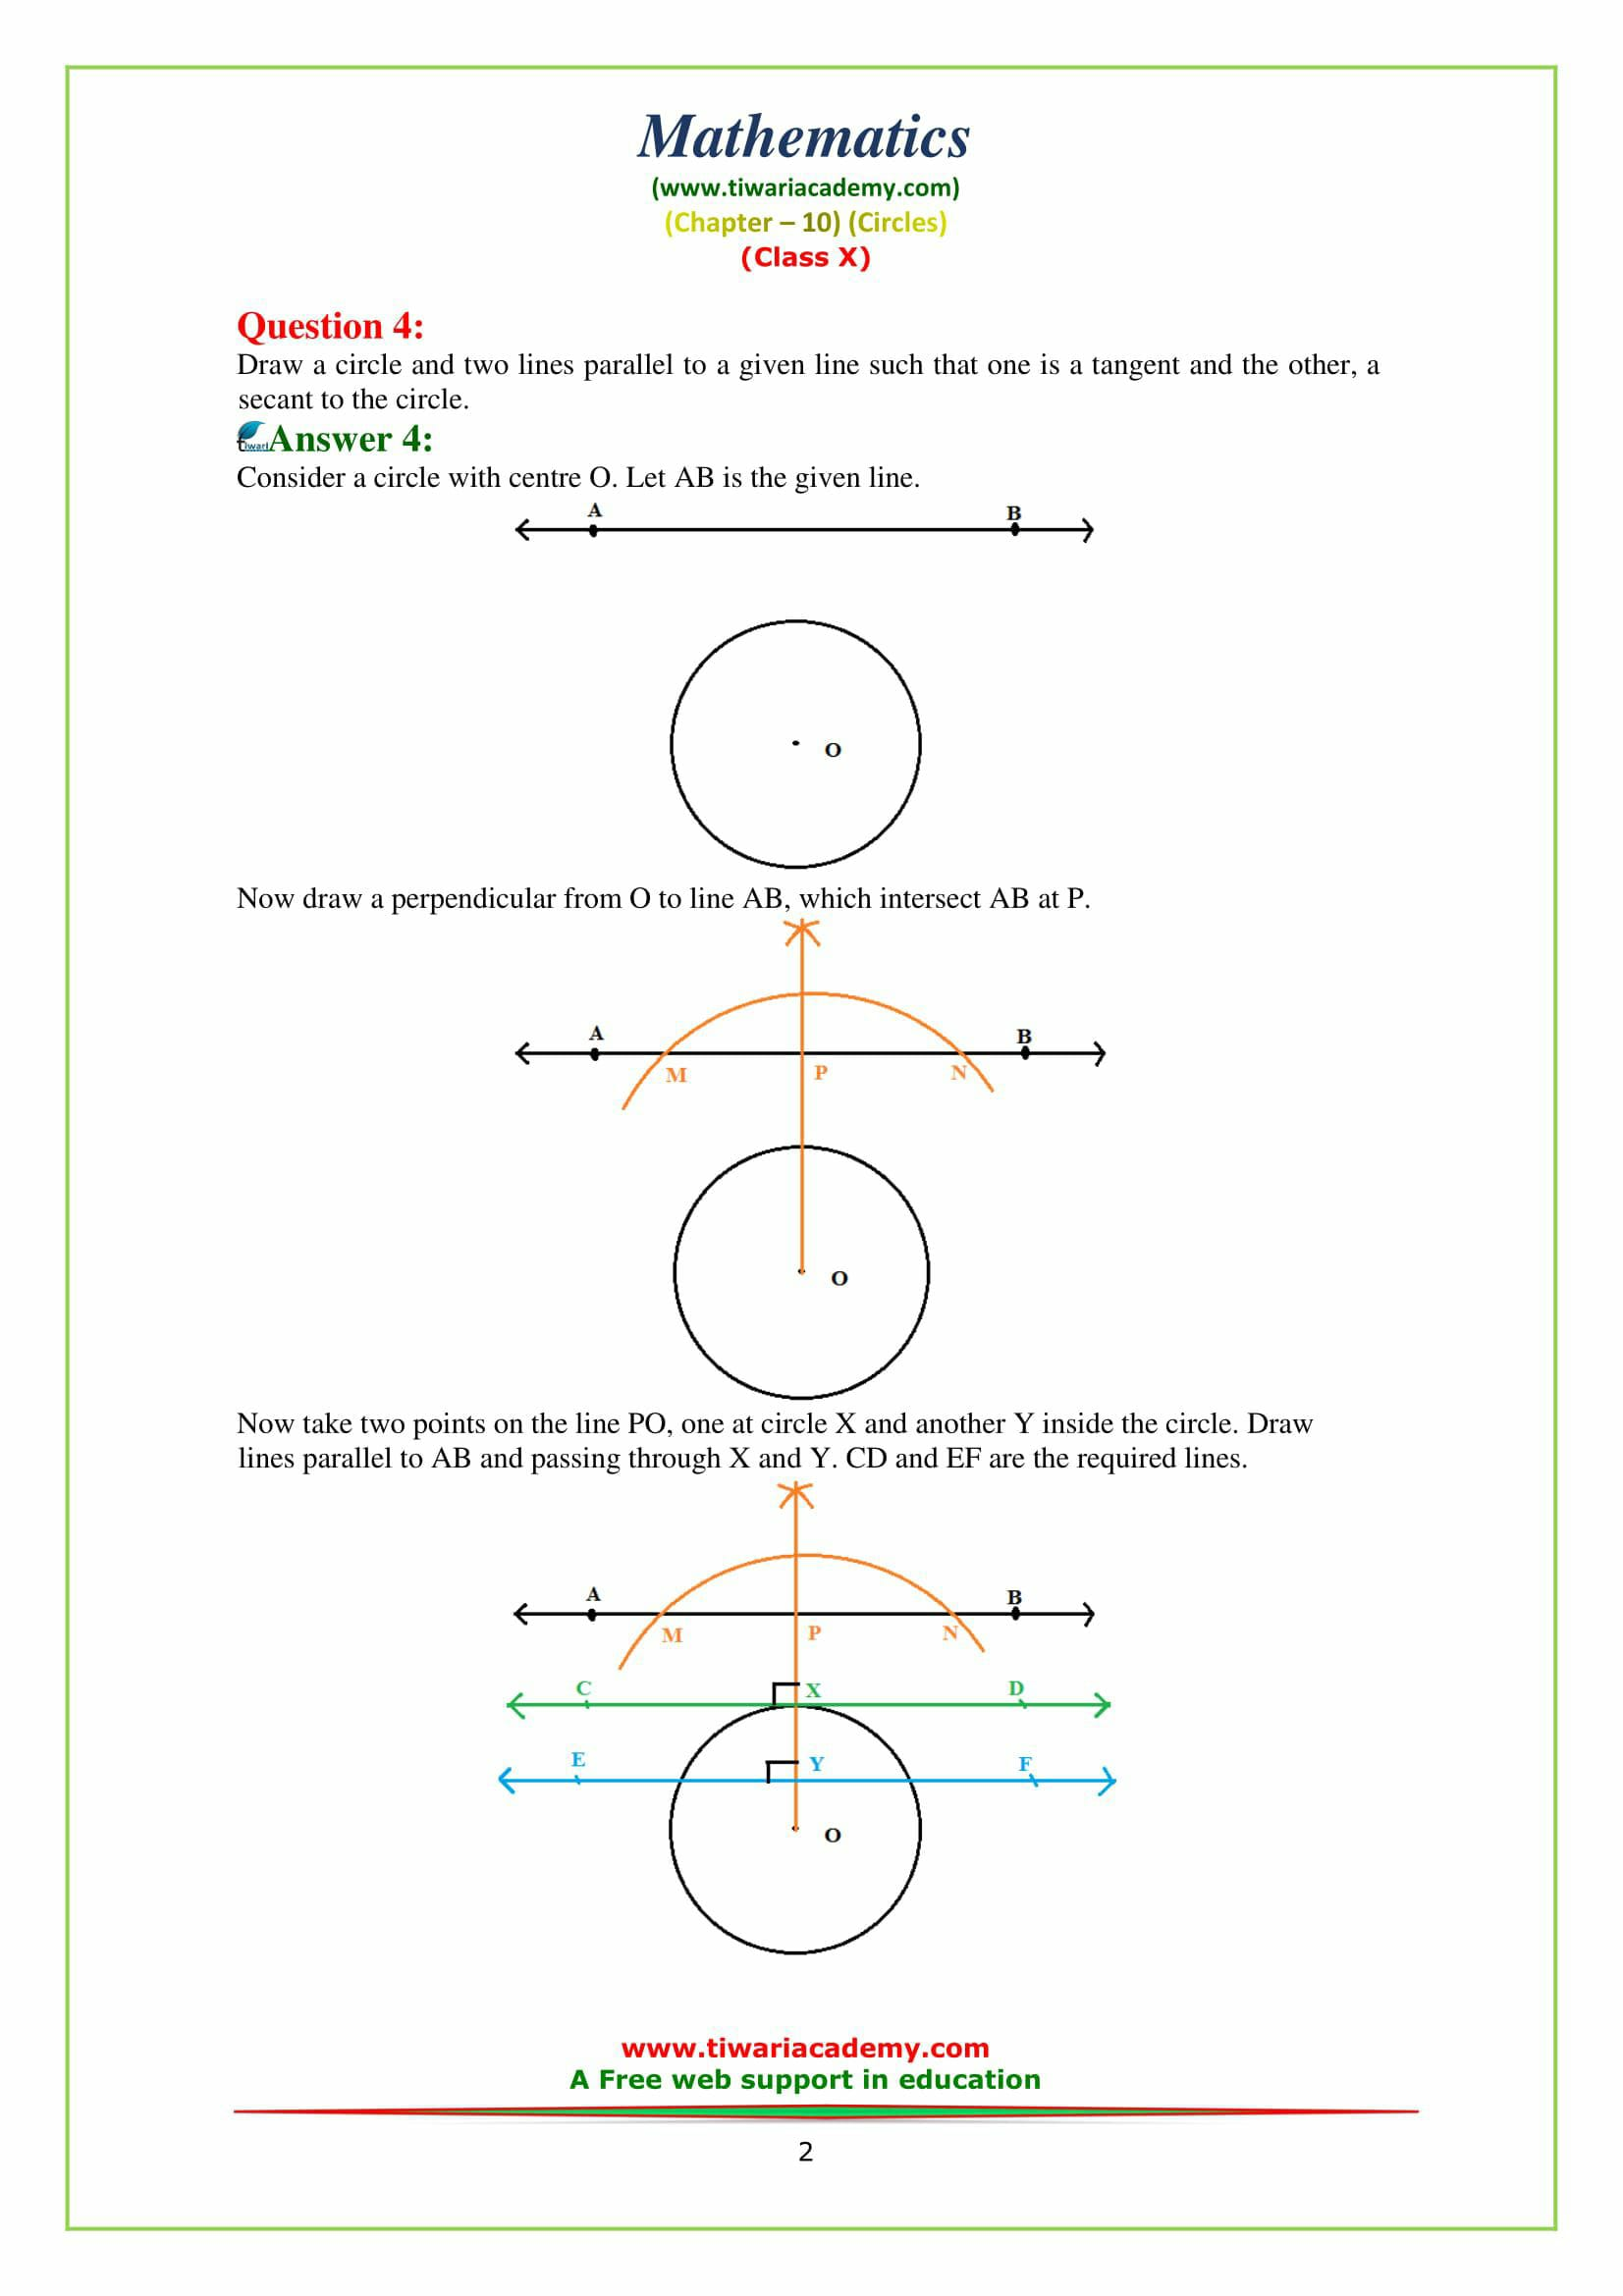 NCERT Solutions for Class 10 Maths Chapter 10 Exercise 10.1 Question 4